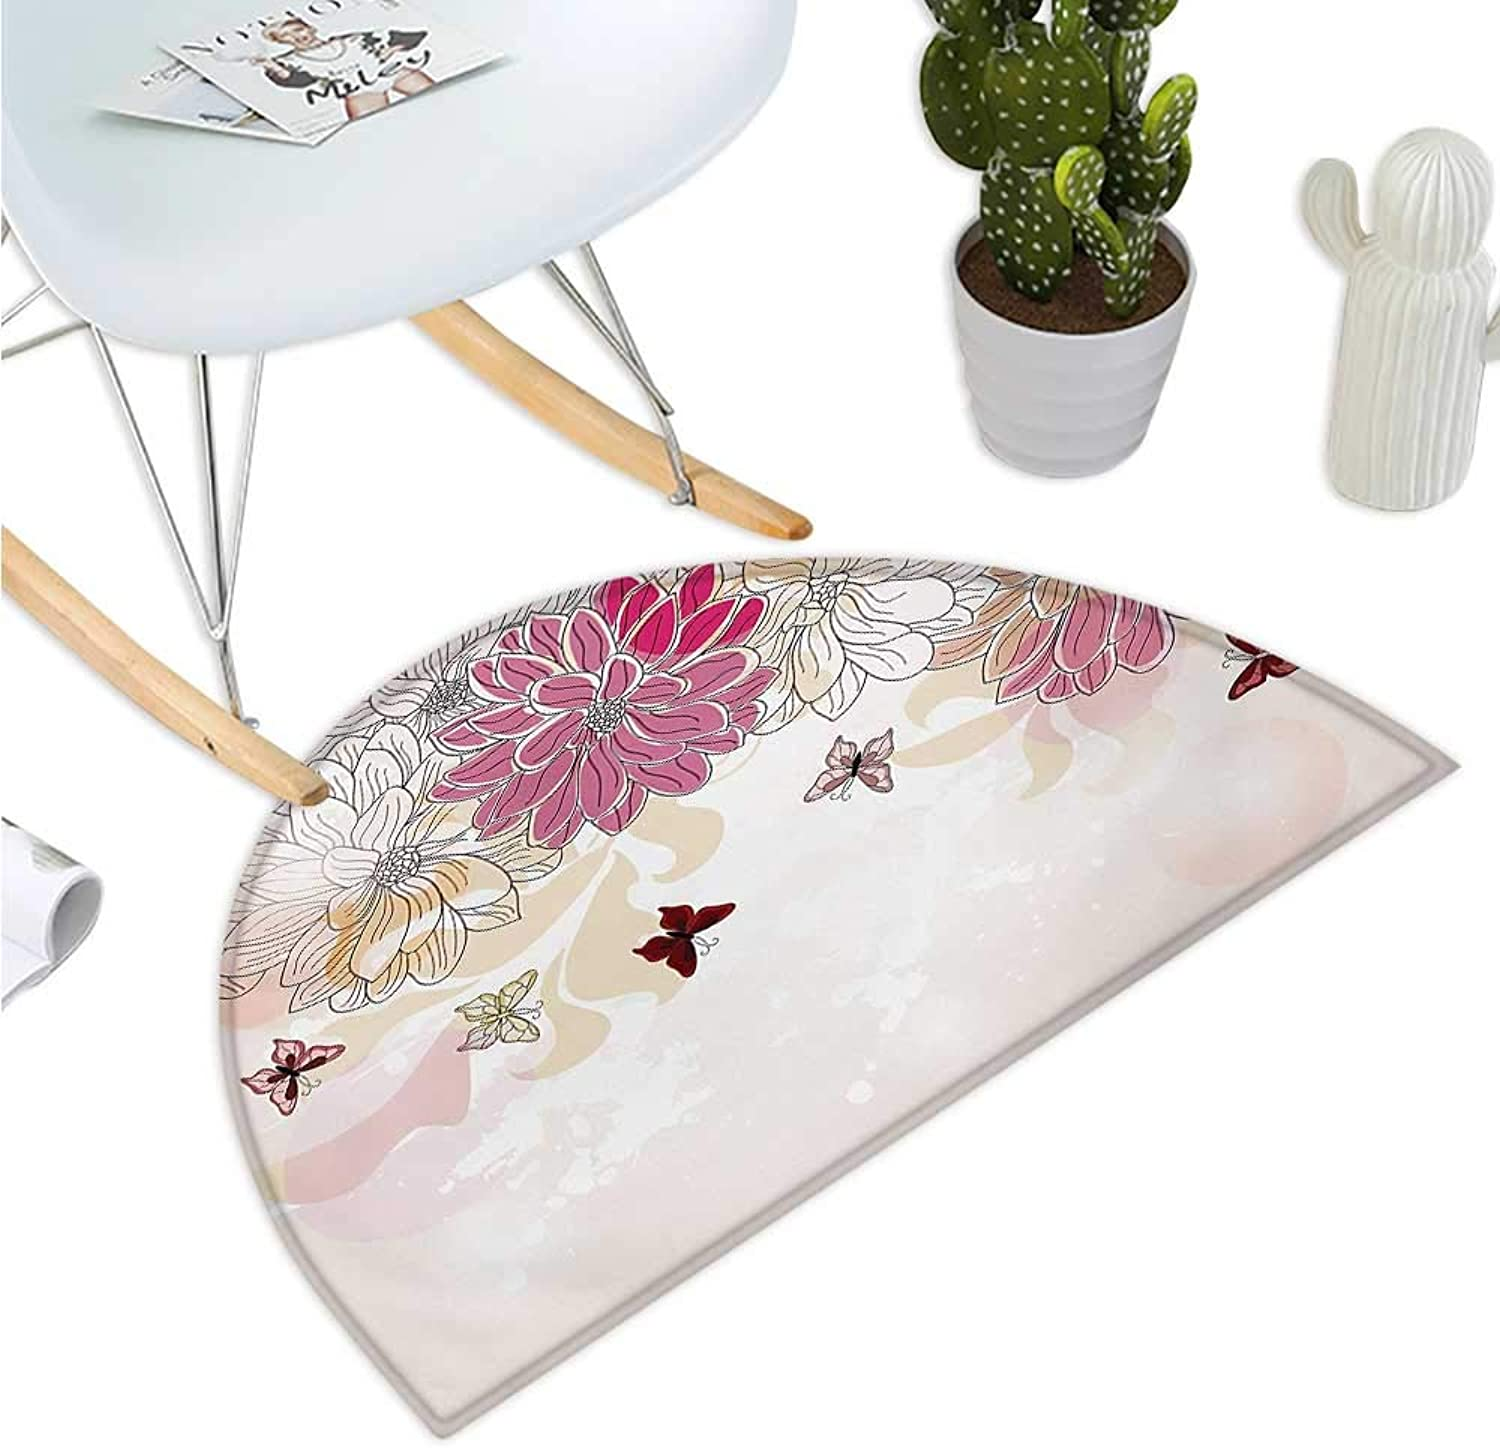 Grunge Semicircular Cushion Baby Pink Petals Spring Composition with Flowers and Butterflies Vintage Style Print Entry Door Mat H 39.3  xD 59  Pink Cream